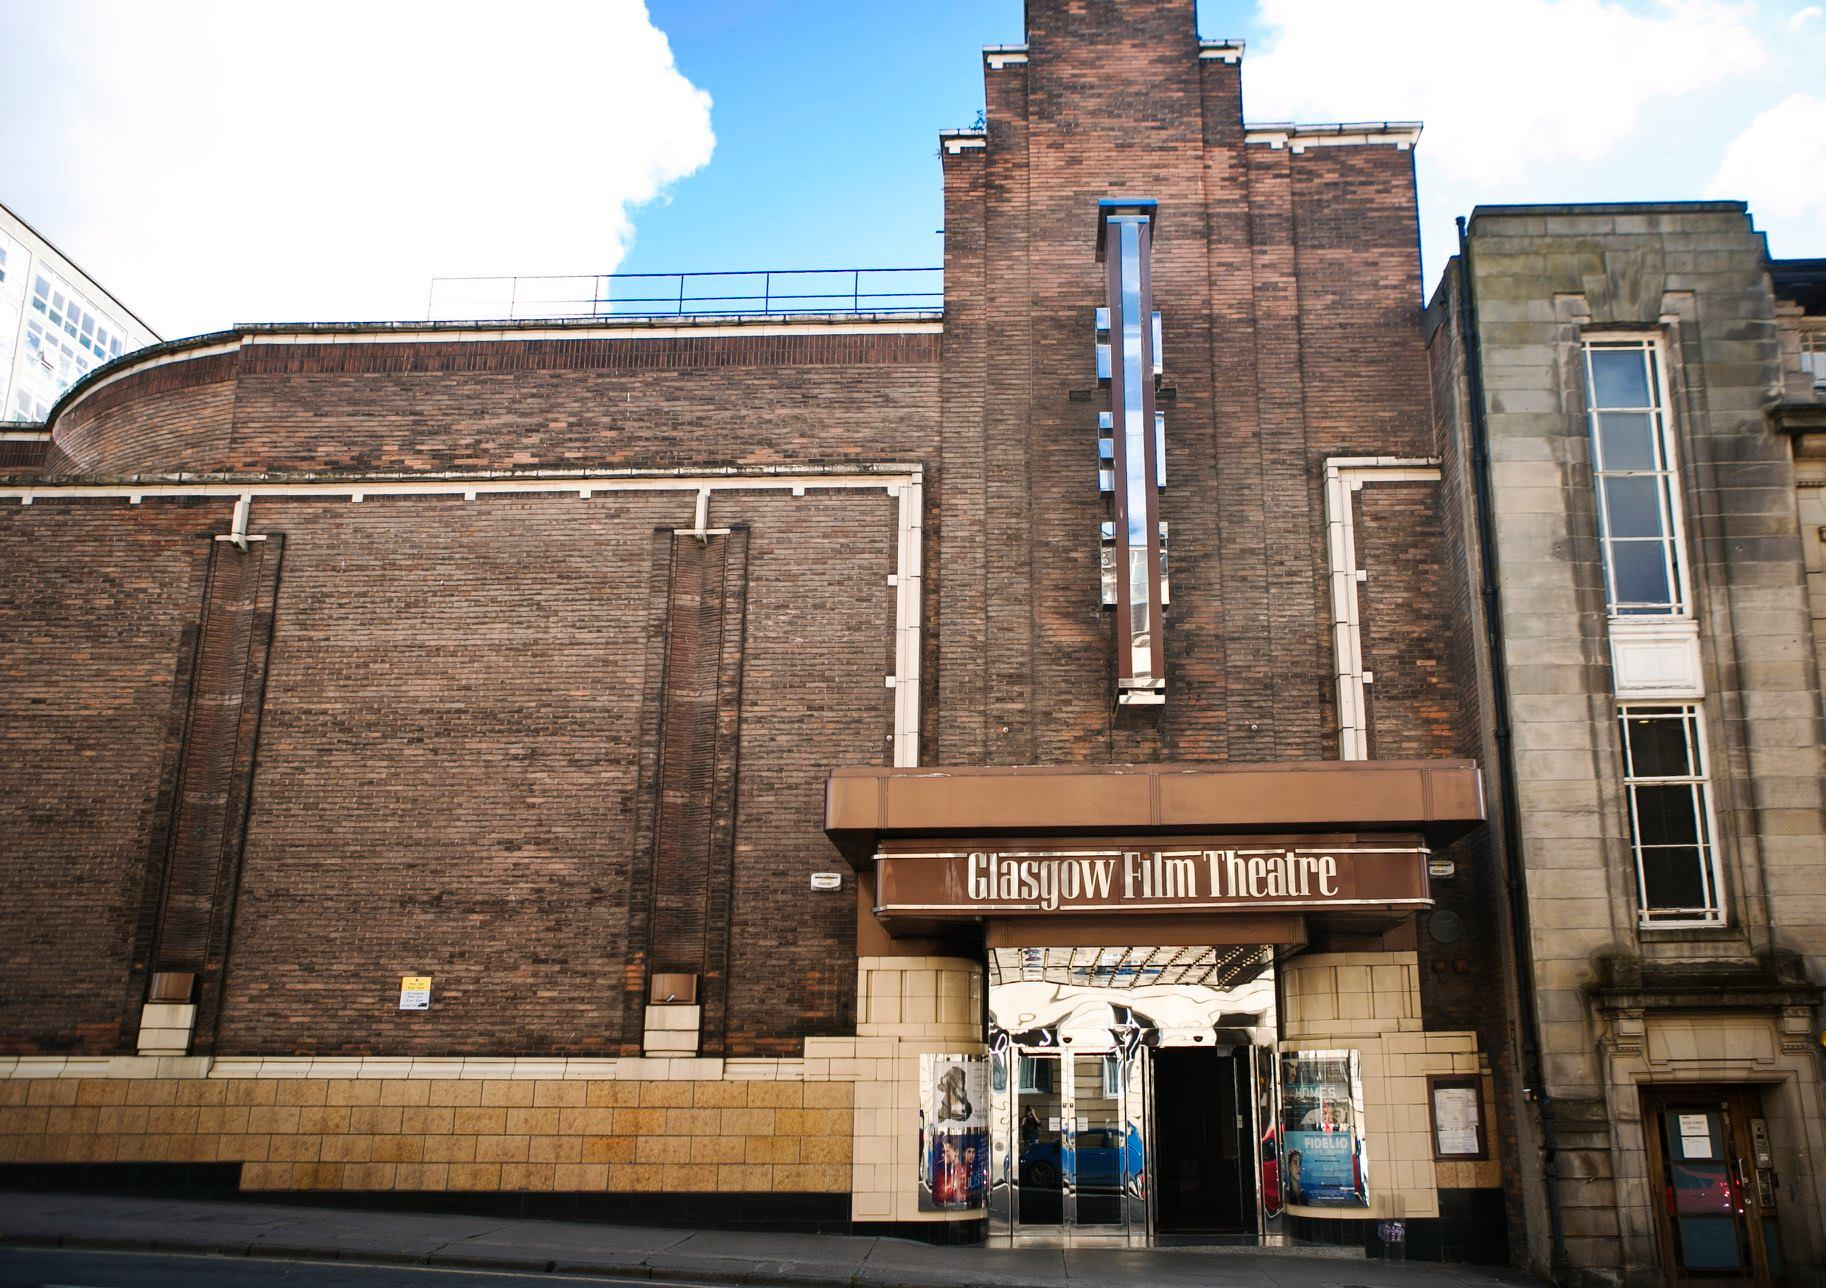 The brown stone exterior of the Glasgow Film Theatre, a 1930s art deco building in Glasgow